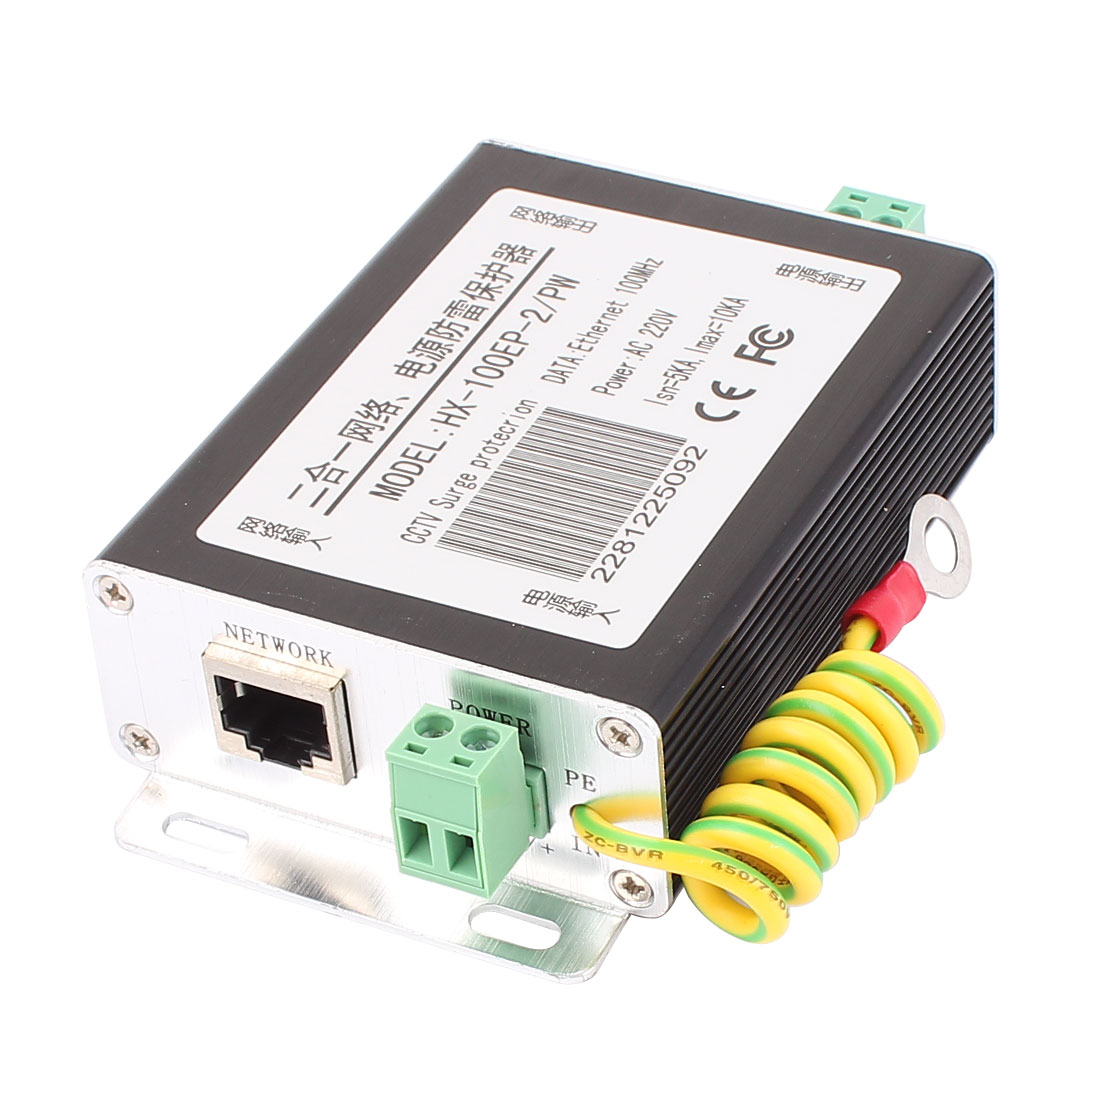 HX-100EP-2/PW RJ45 Port 2 in 1 Network Surge Protector Lightning Arrester